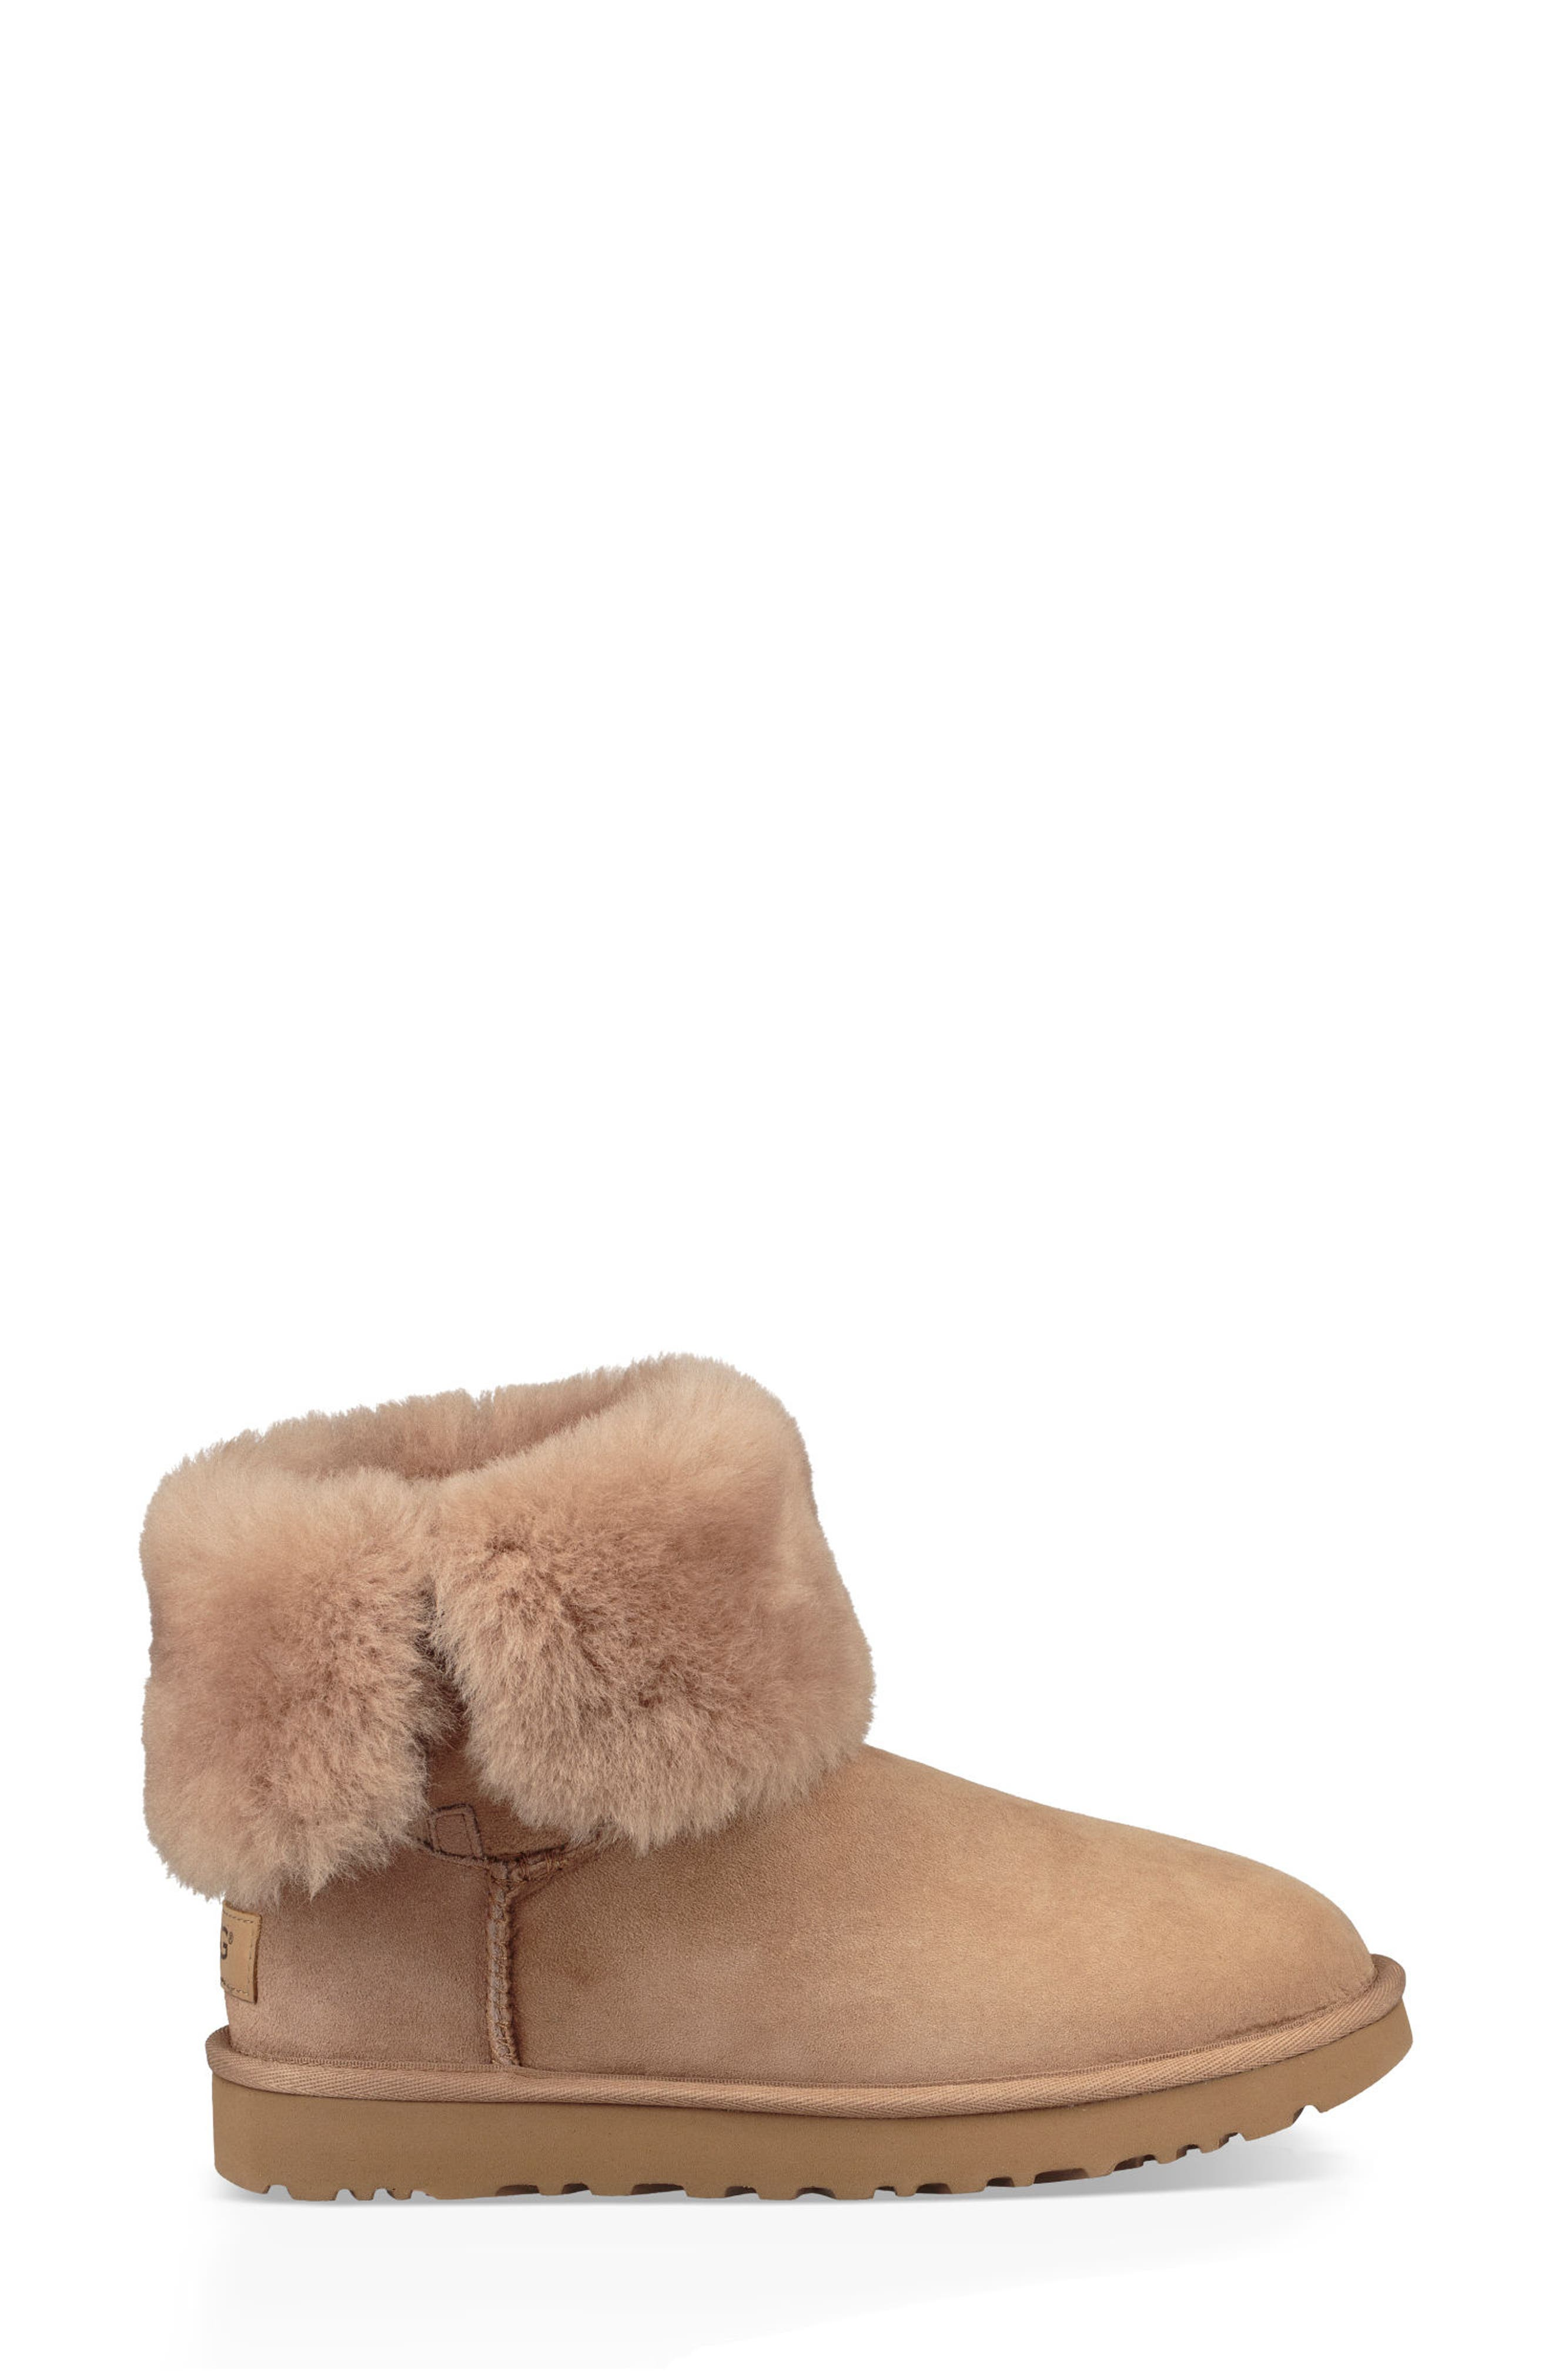 'Bailey Button II' Boot,                             Alternate thumbnail 4, color,                             Fawn Suede